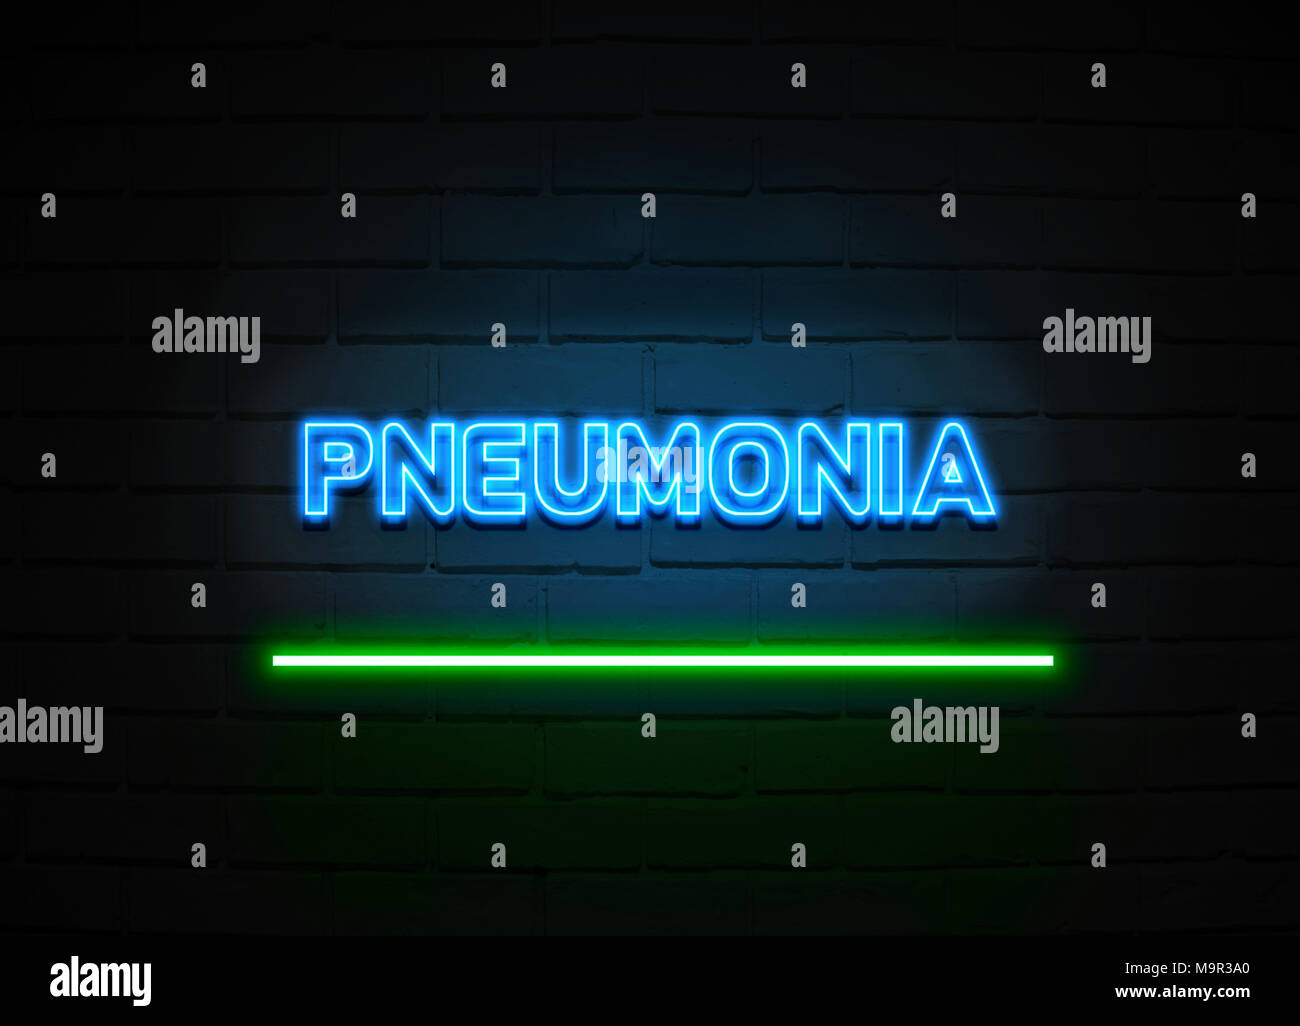 Pneumonia neon sign - Glowing Neon Sign on brickwall wall - 3D rendered royalty free stock illustration. - Stock Image